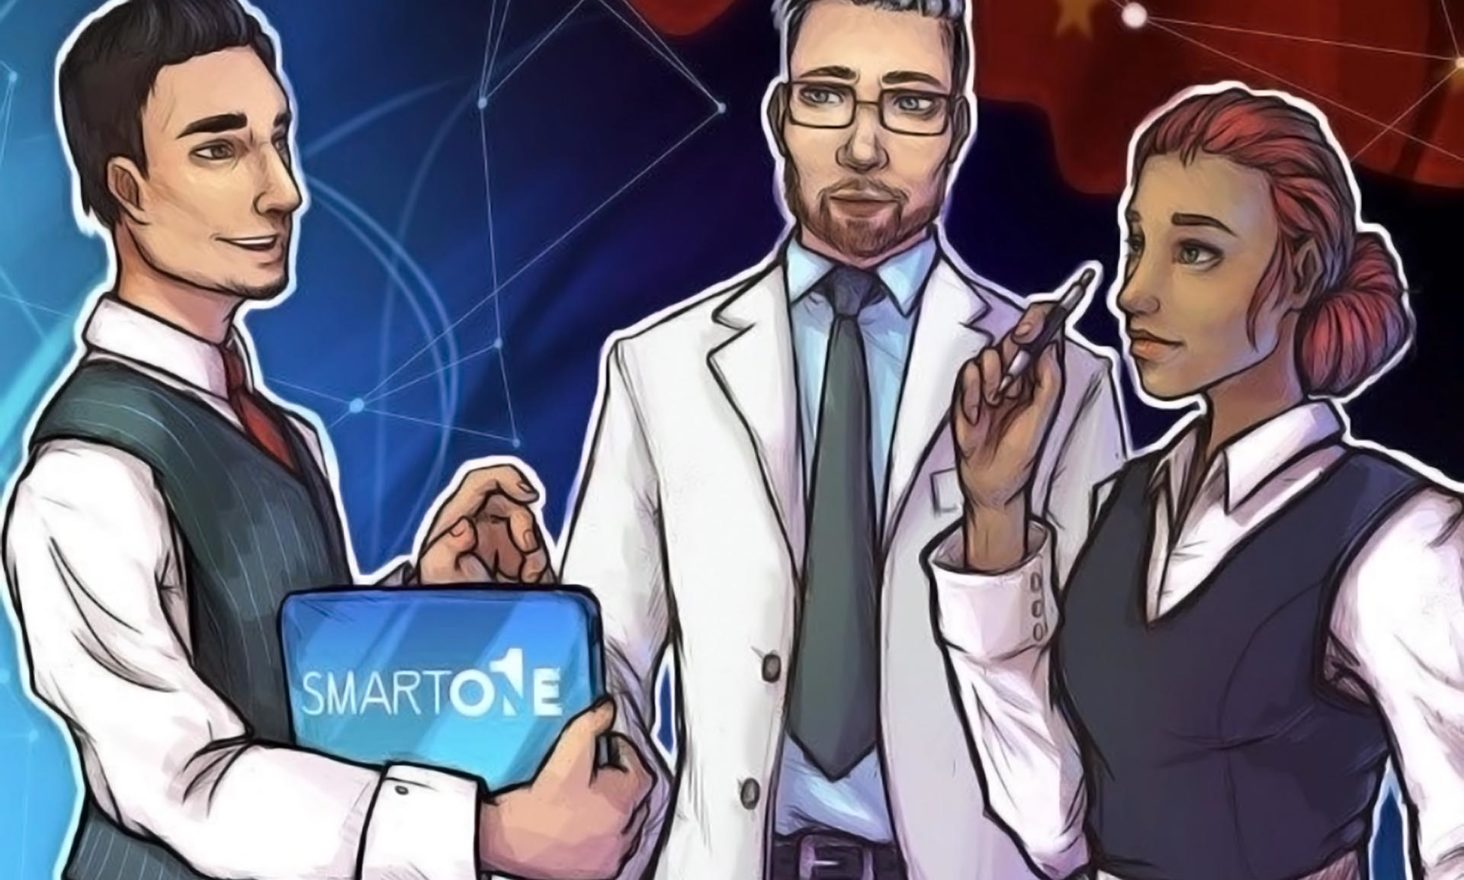 Building Decentralized Legal Platform for the Crypto Community: SmartOne Launches Groundbreaking ICO